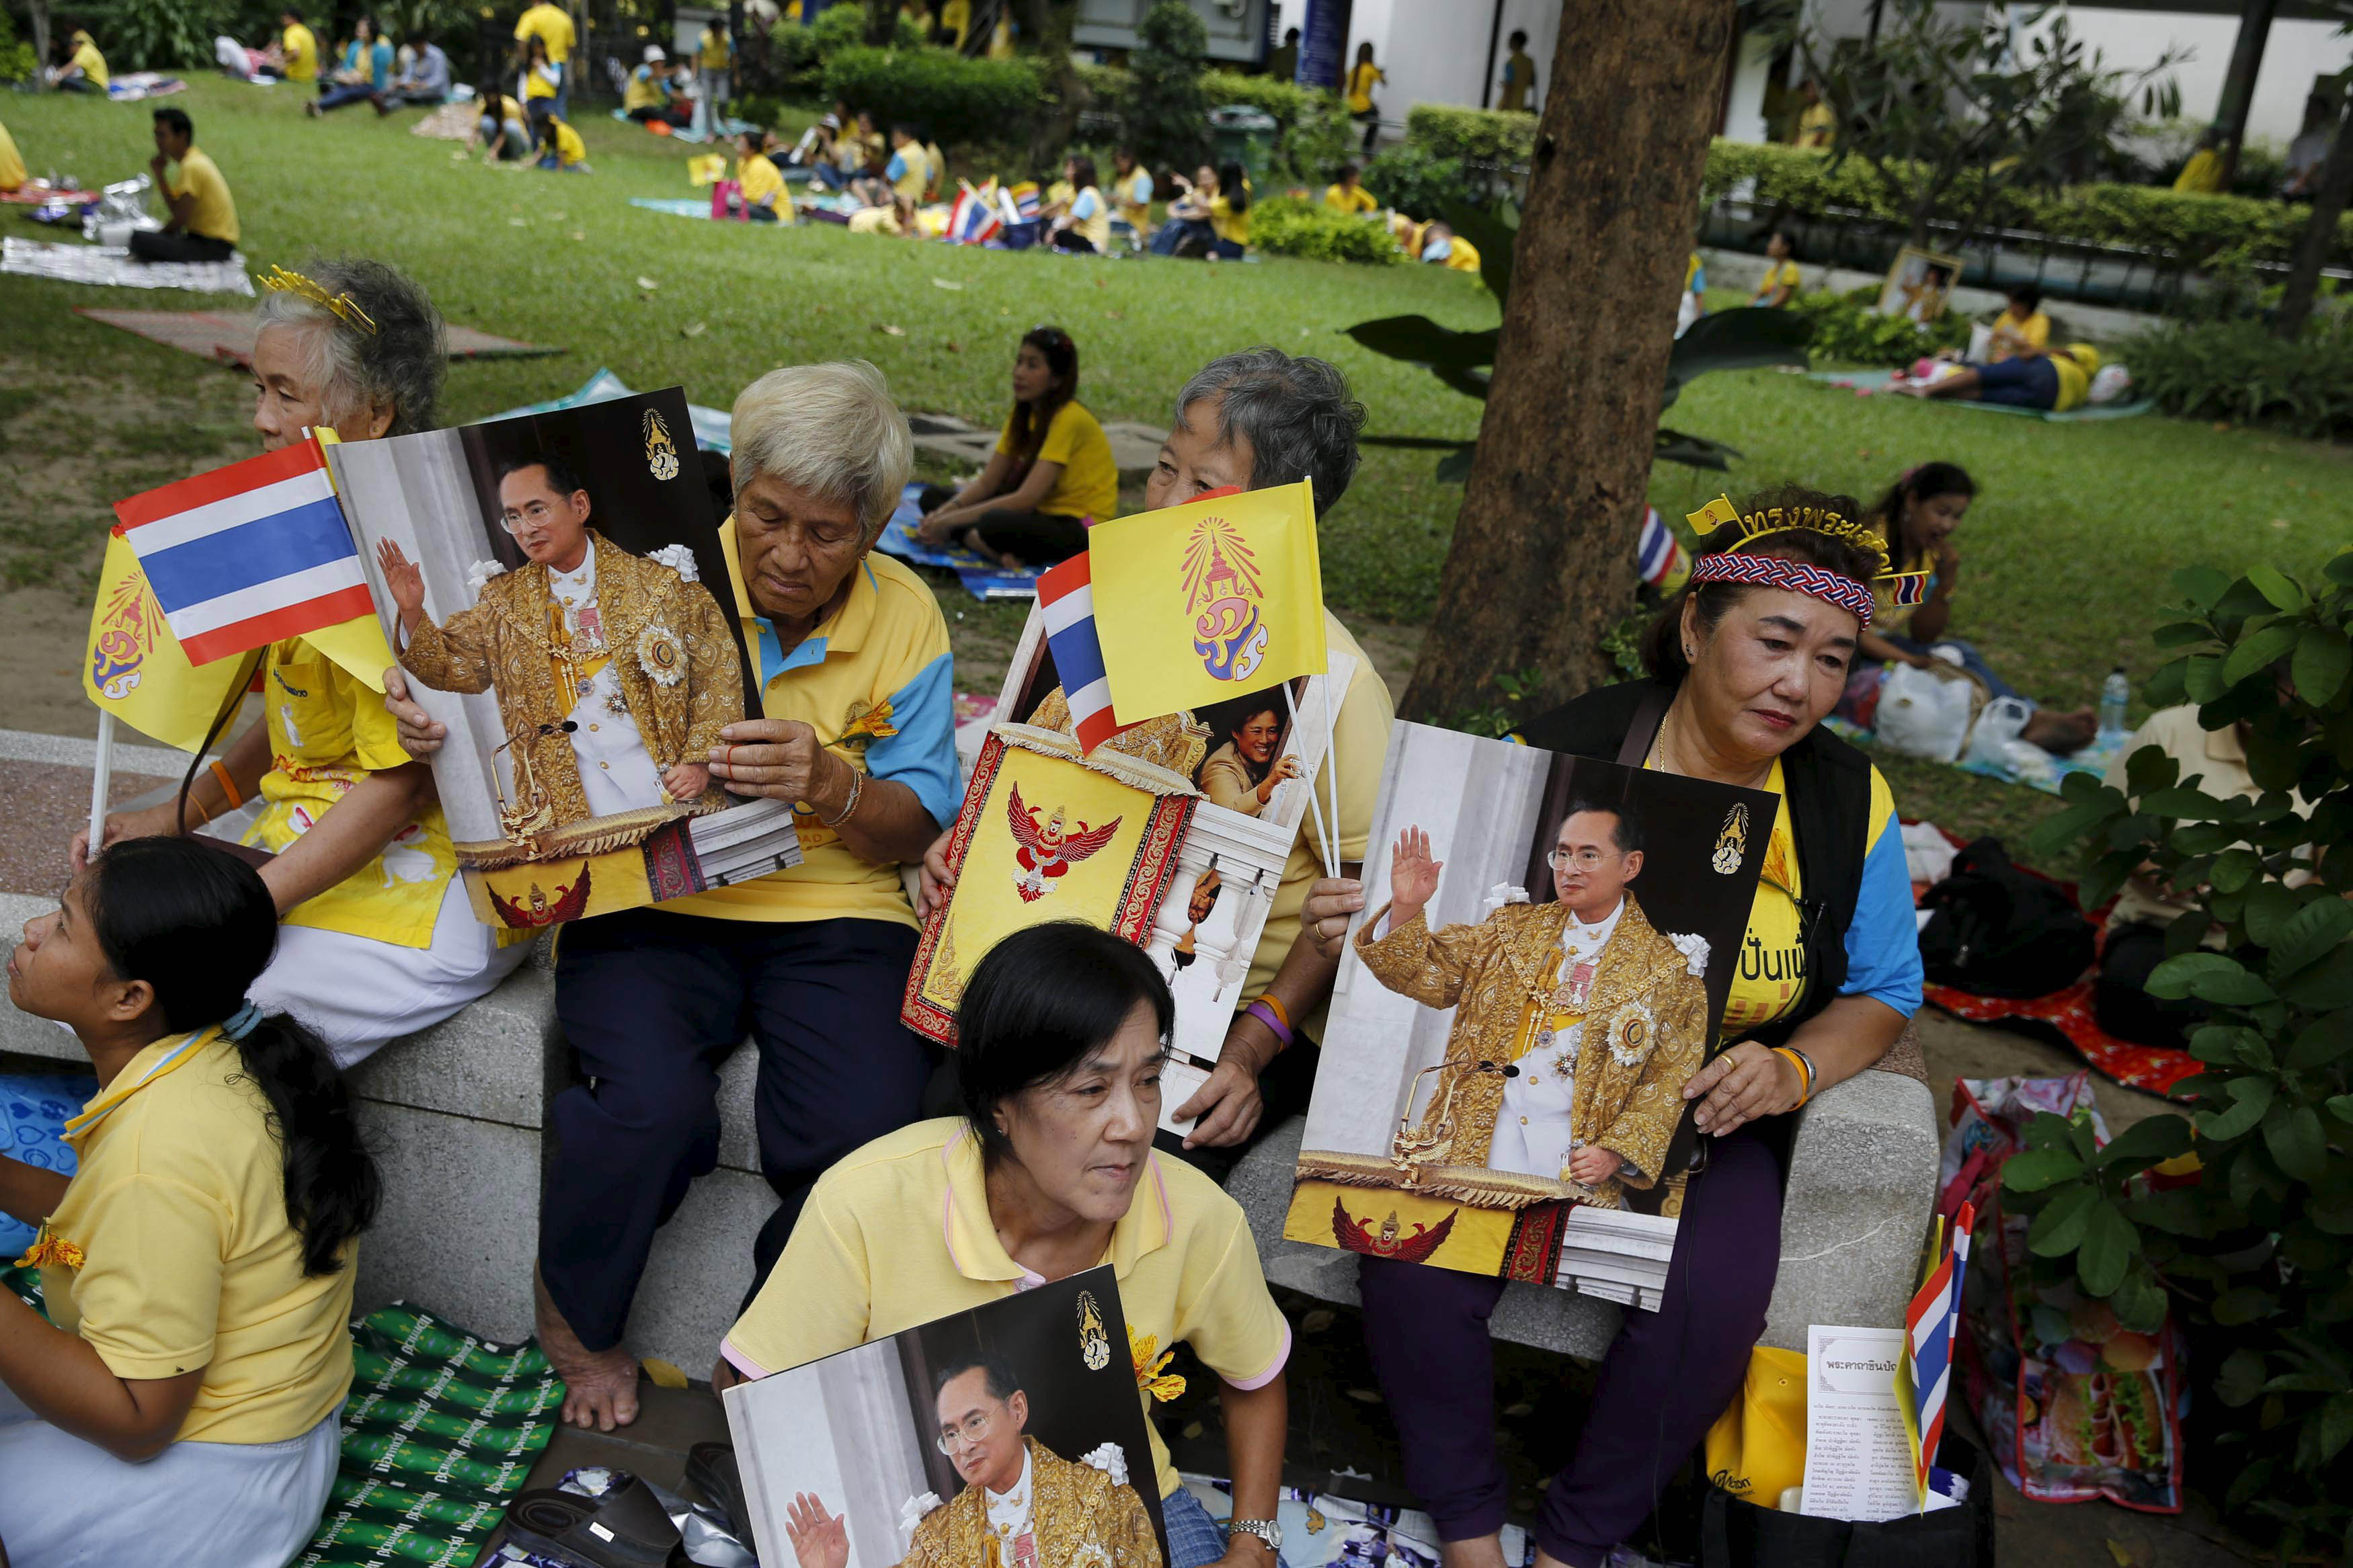 Supporters of Thai King Bhumibol Adulyadej sit outside Siriraj hospital, where a group has gathered to mark his 88th birthday, in Bangkok December 5, 2015. Photo: Reuters